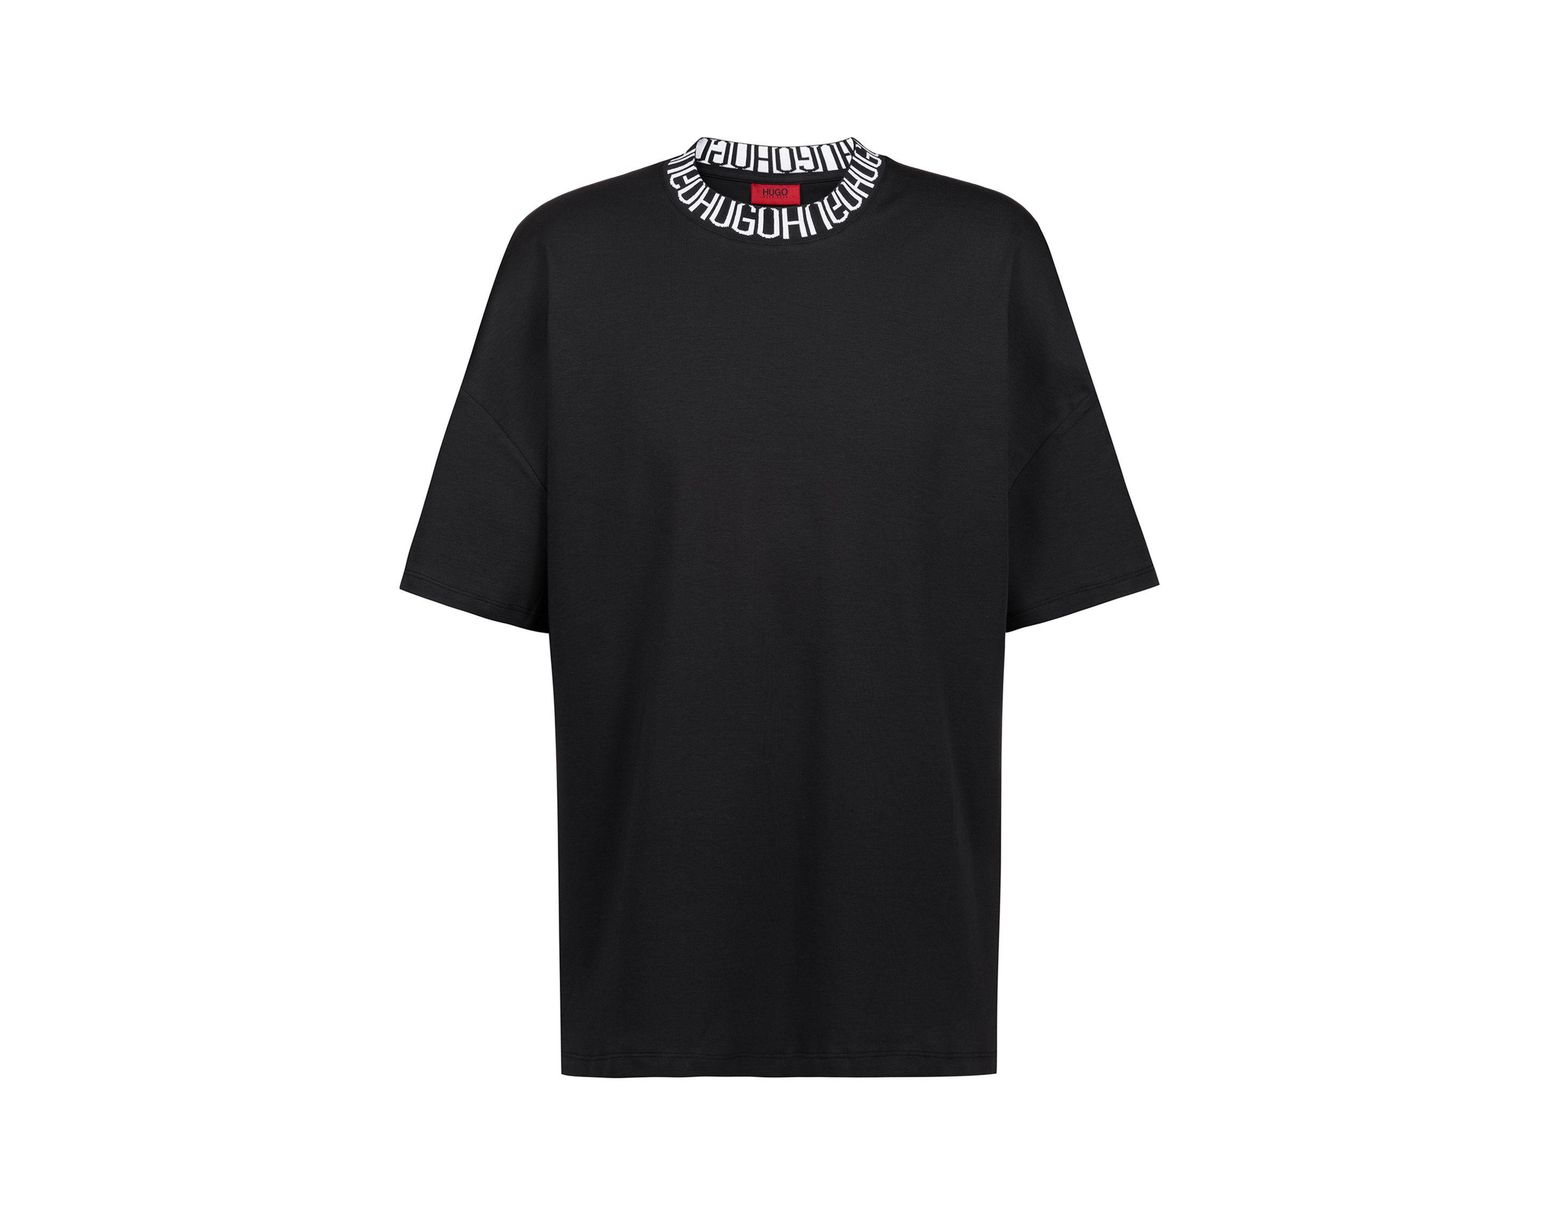 be6de2352 HUGO Oversized-fit T-shirt With Reverse-logo Neckline in Black for Men -  Save 61% - Lyst